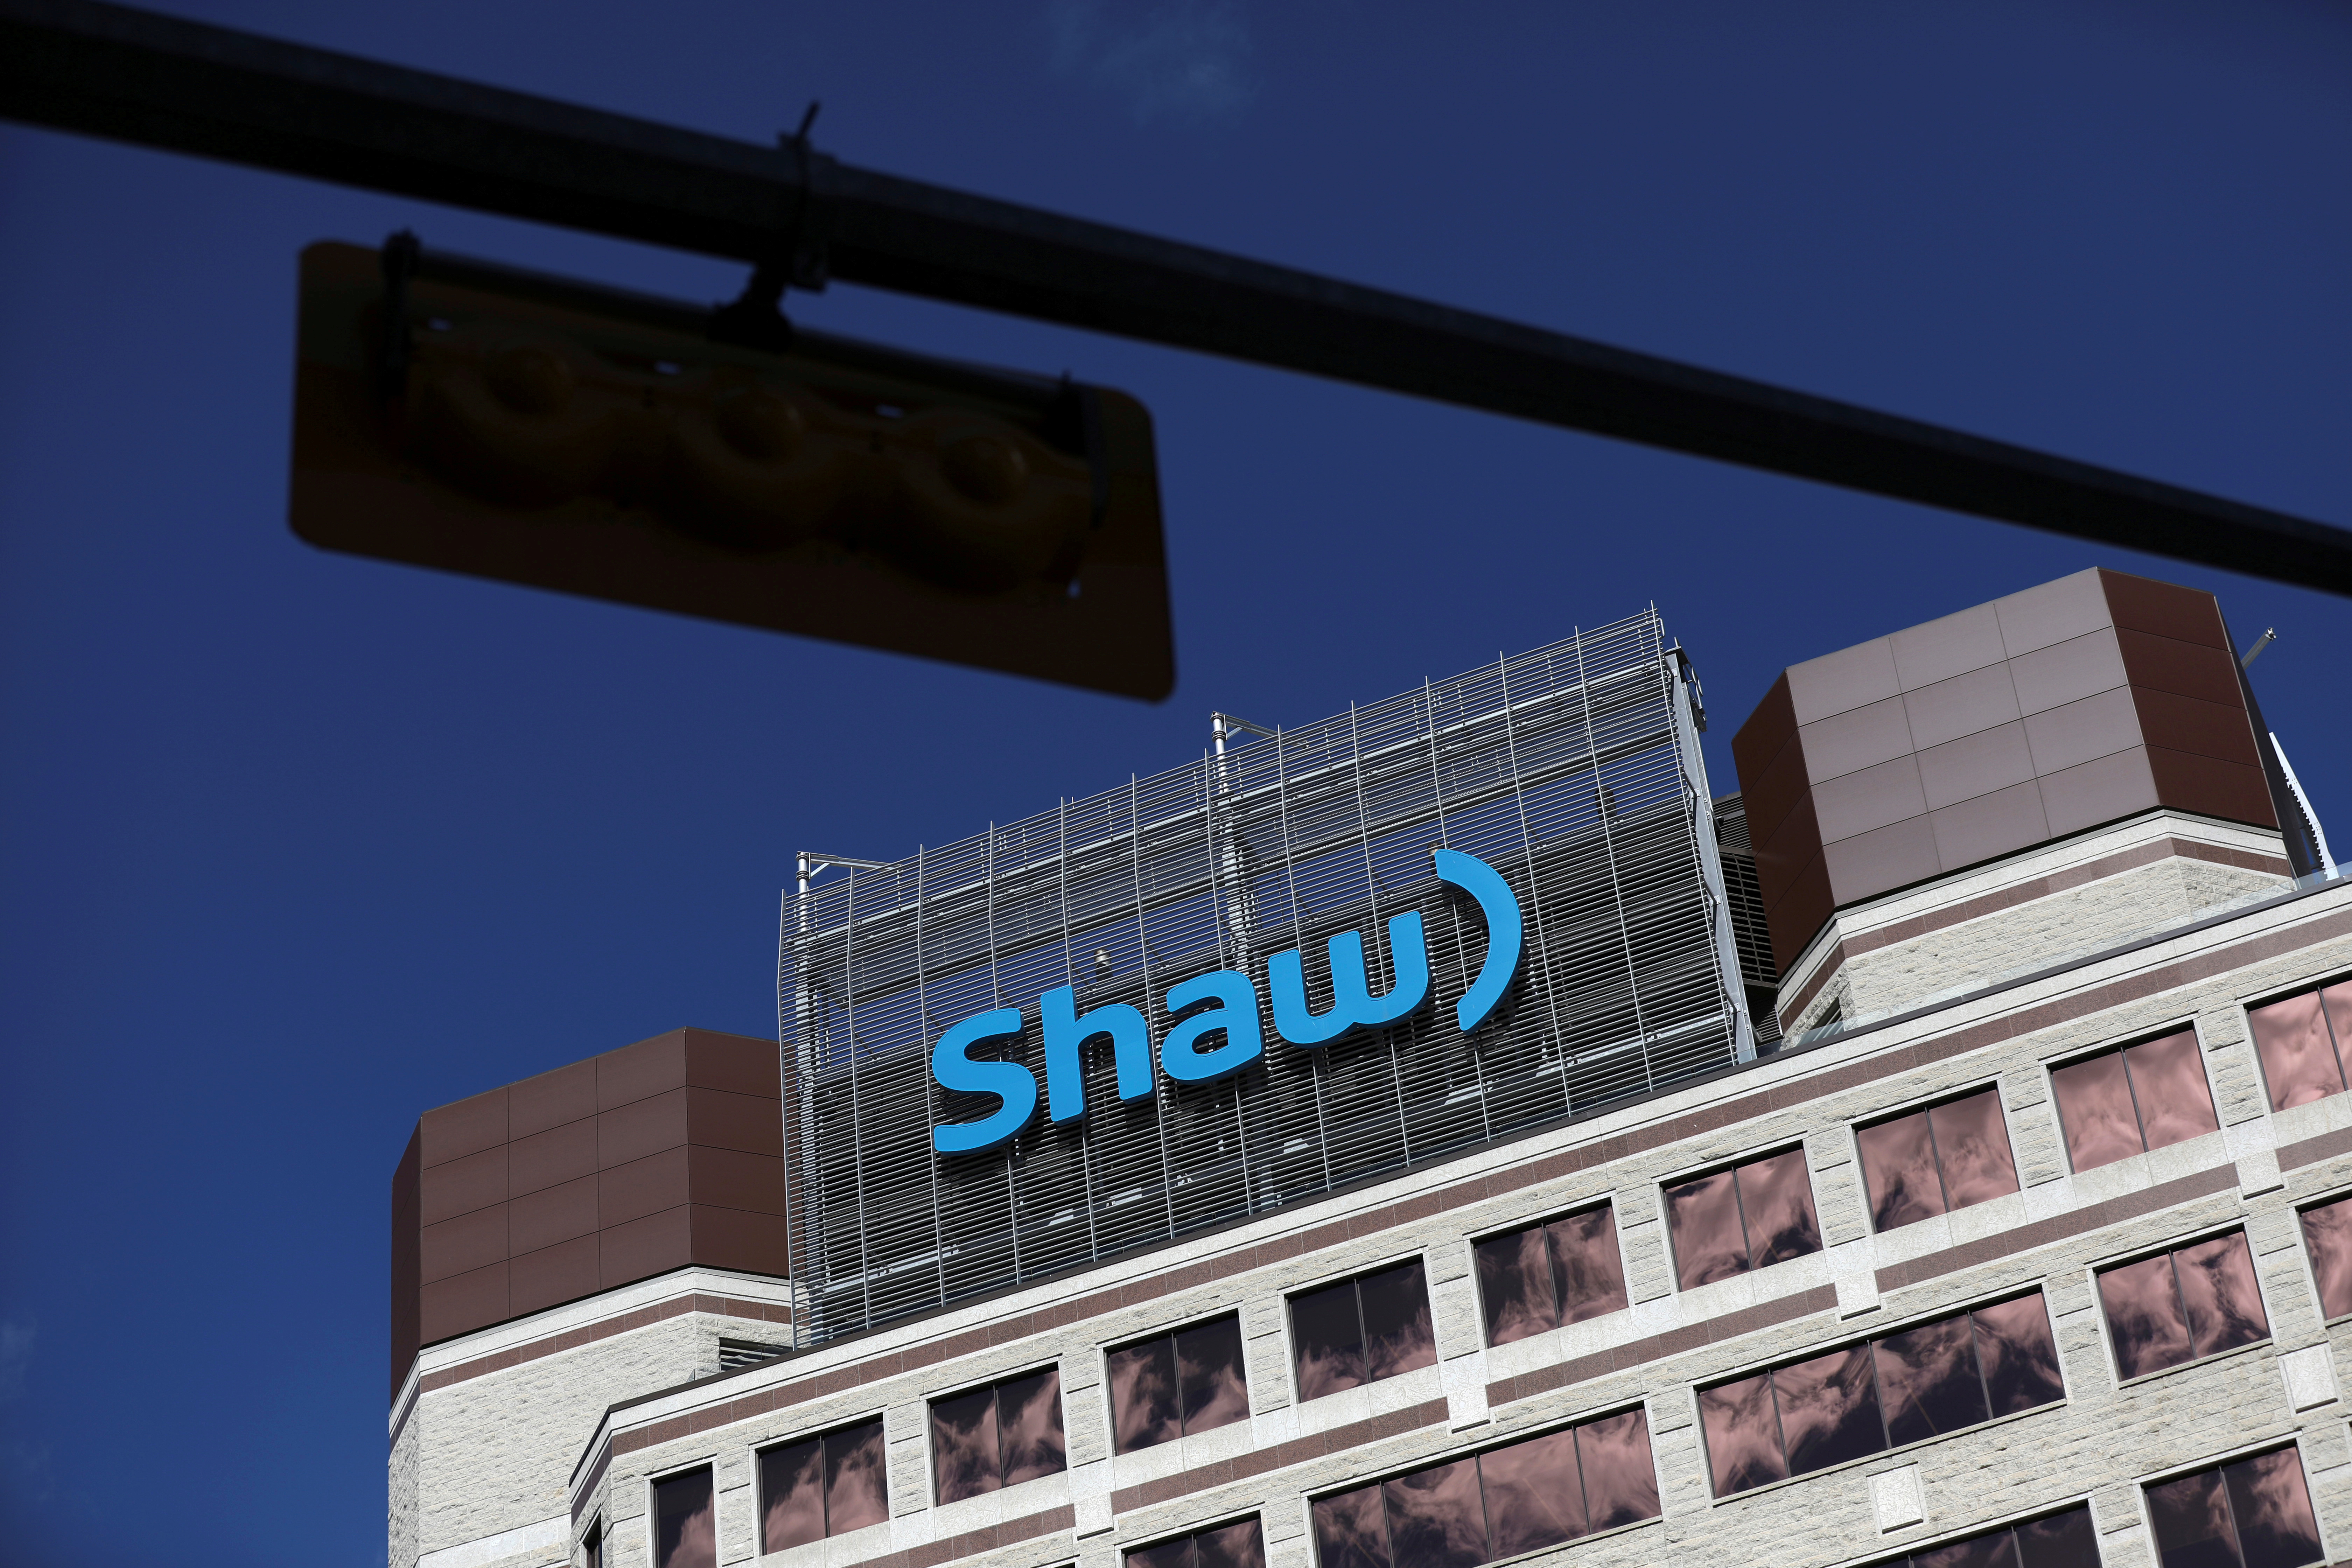 The Shaw Communications logo is seen at their office in Calgary, Alberta, Canada, April 17, 2019. REUTERS/Chris Wattie/File Photo